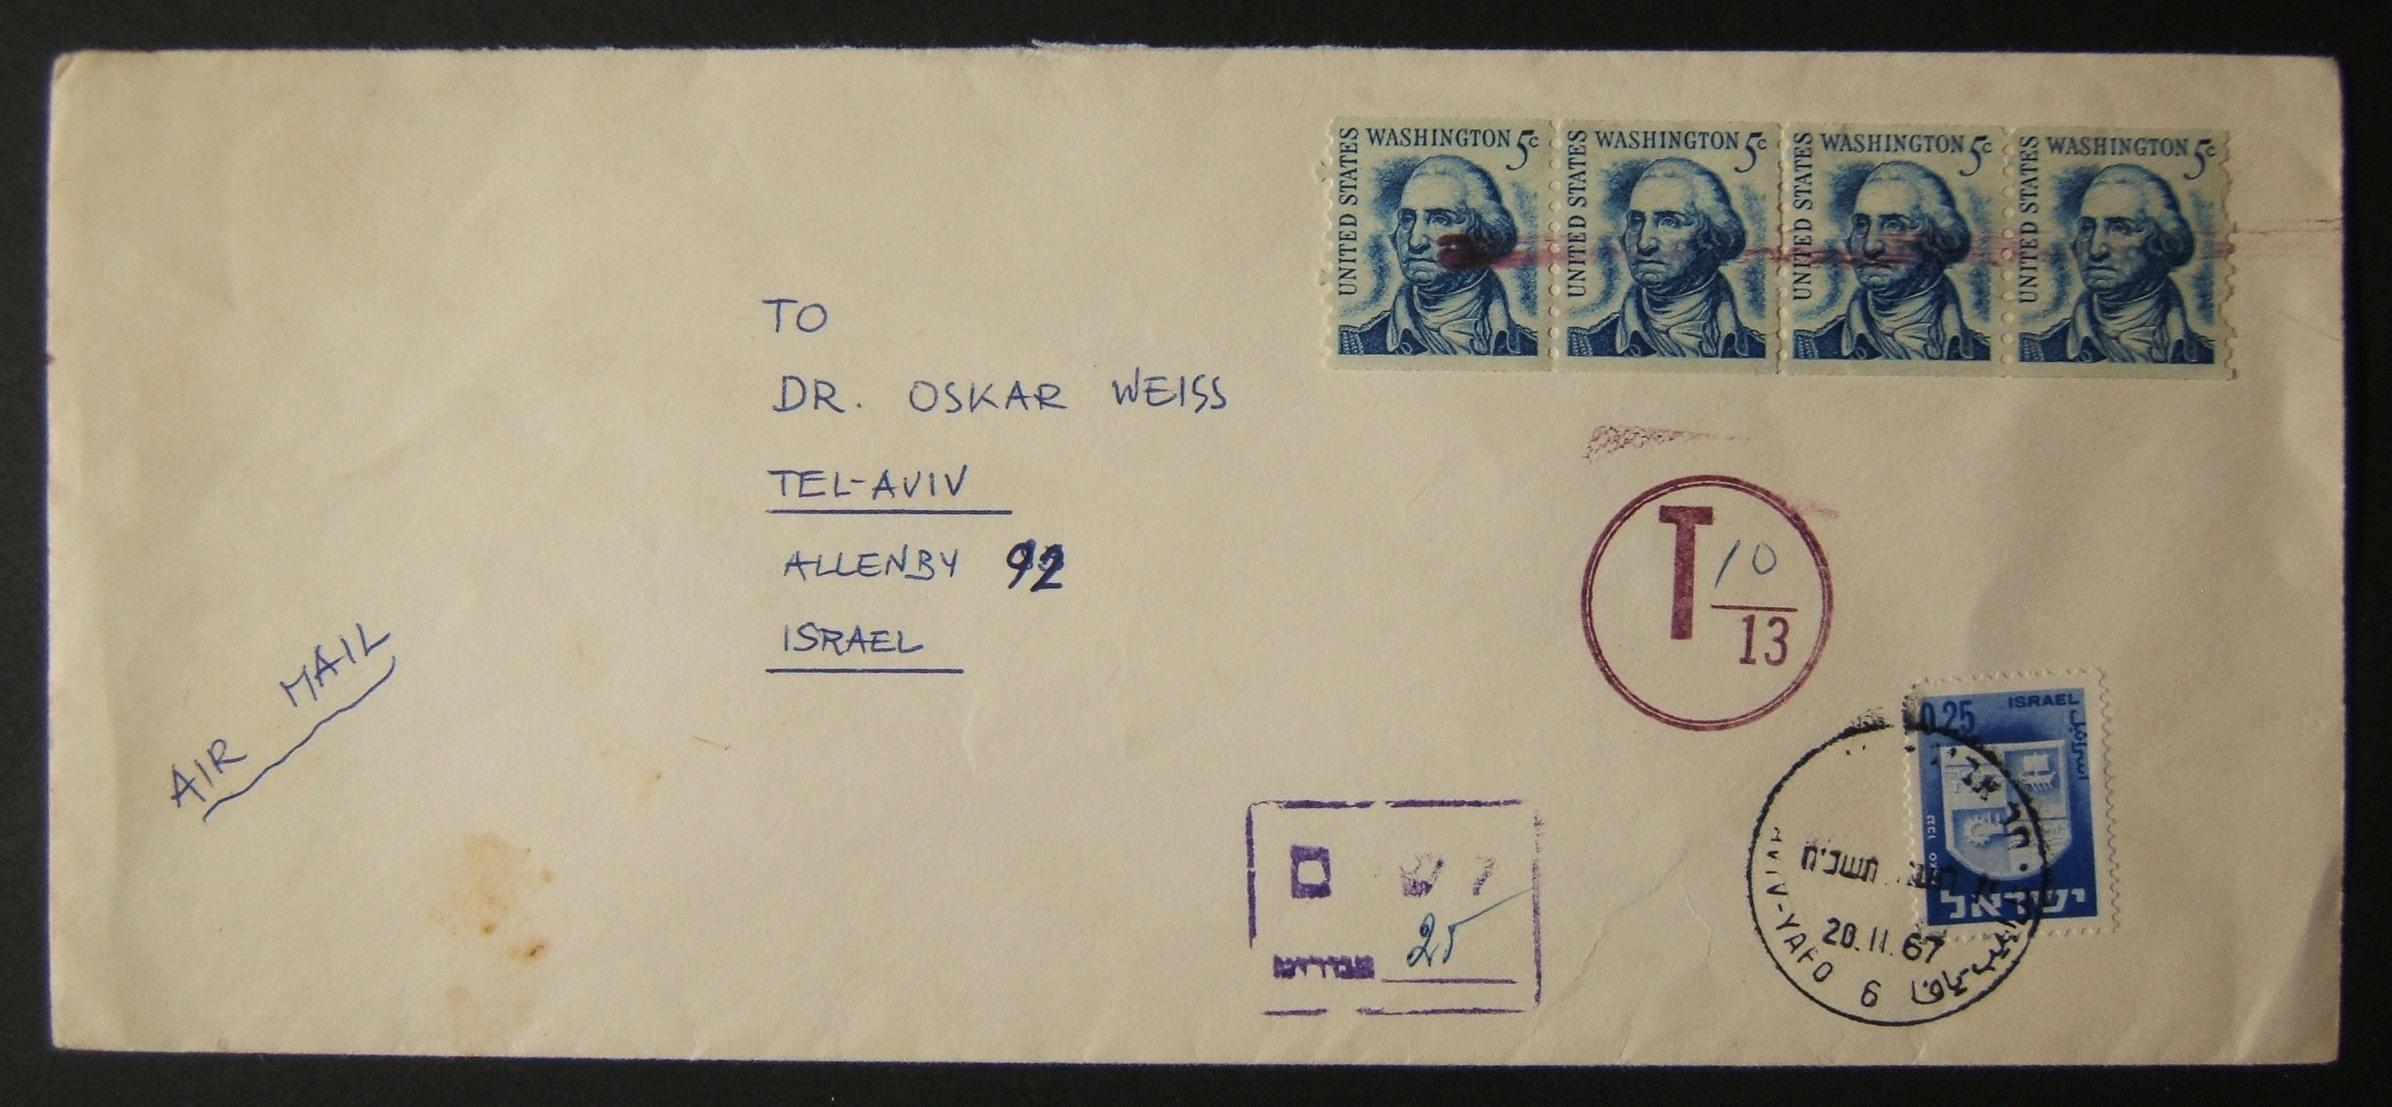 1967 incoming US taxed mail: Nov. 1967 airmail commercial cover ex NYC to TLV underfranked at $0.20 and taxed 0.25L in Israel, paid 20-11-67 using 1965/67 1st Town Emblems Ba309 fr